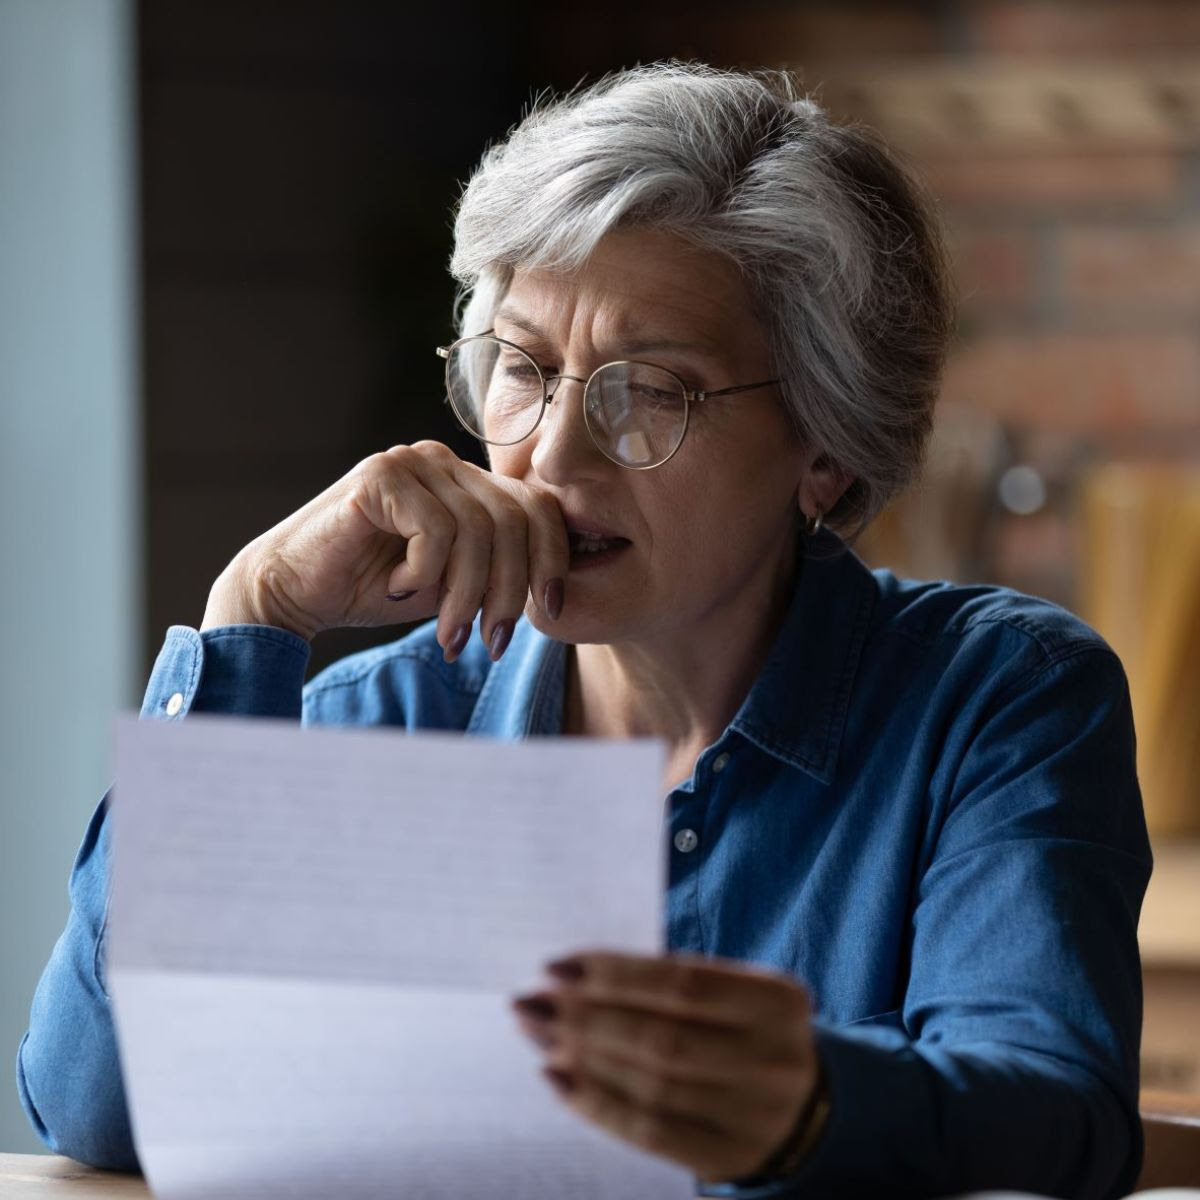 older woman looking concerned while sitting and reading a letter from the mail